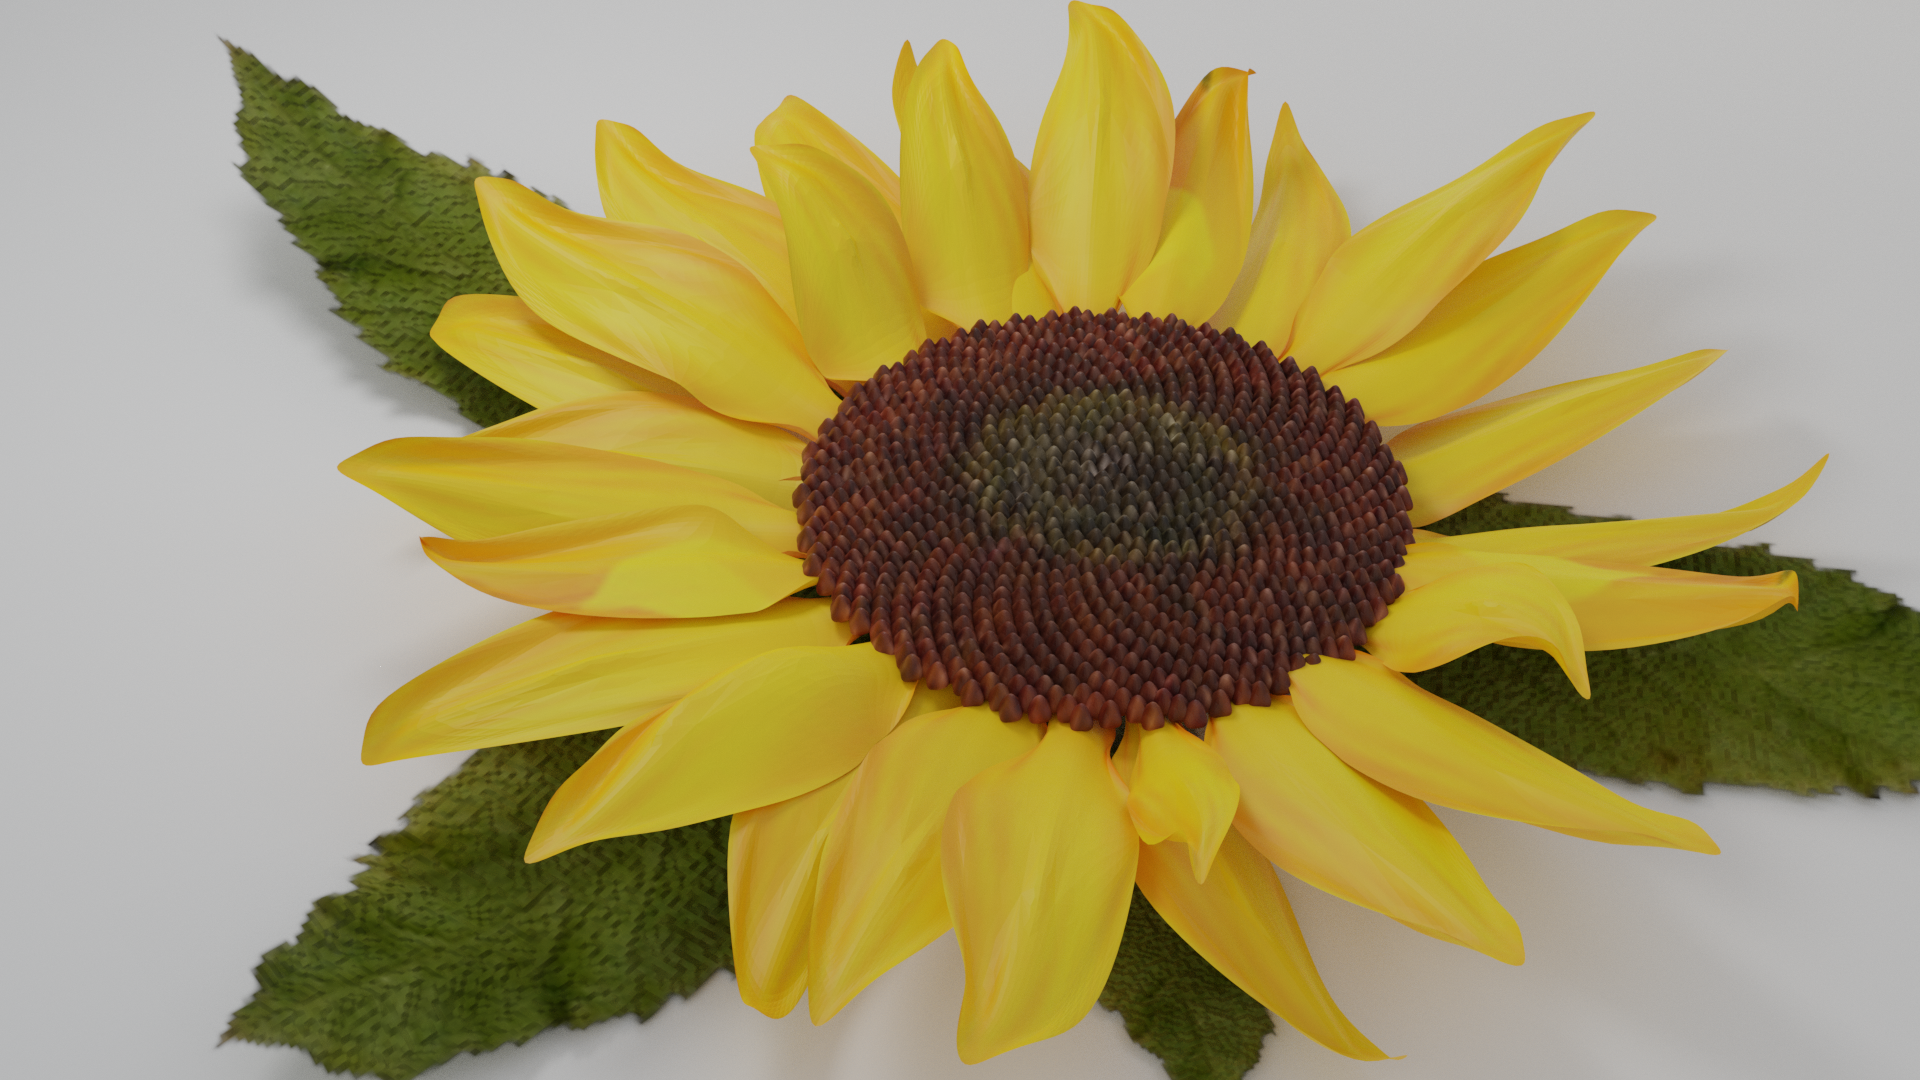 Sunflower preview image 1